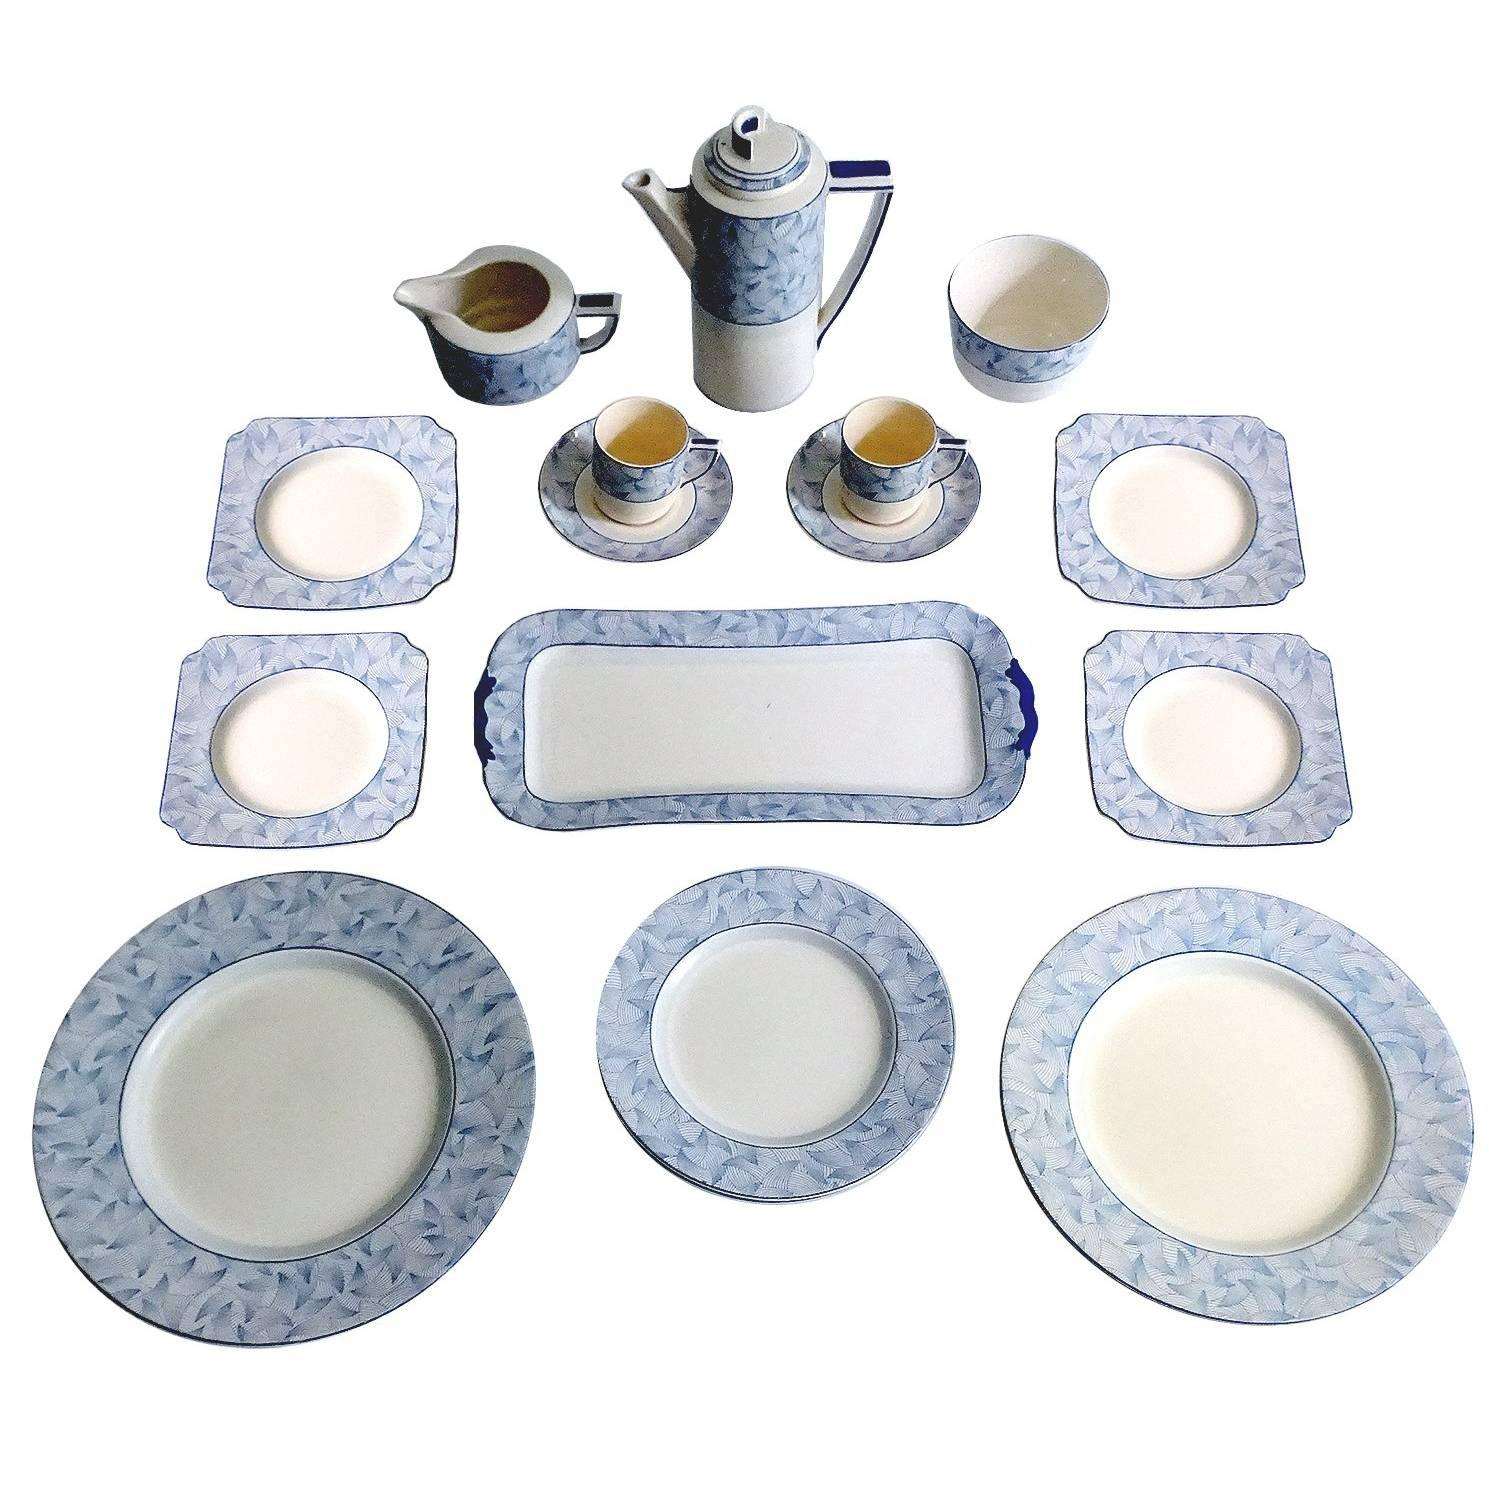 18 PCs Royal Doulton Art Deco Service Dinner Dinnerware Modernist Limoges Era  sc 1 st  1stDibs & 1930s Dinner Plates - 28 For Sale at 1stdibs